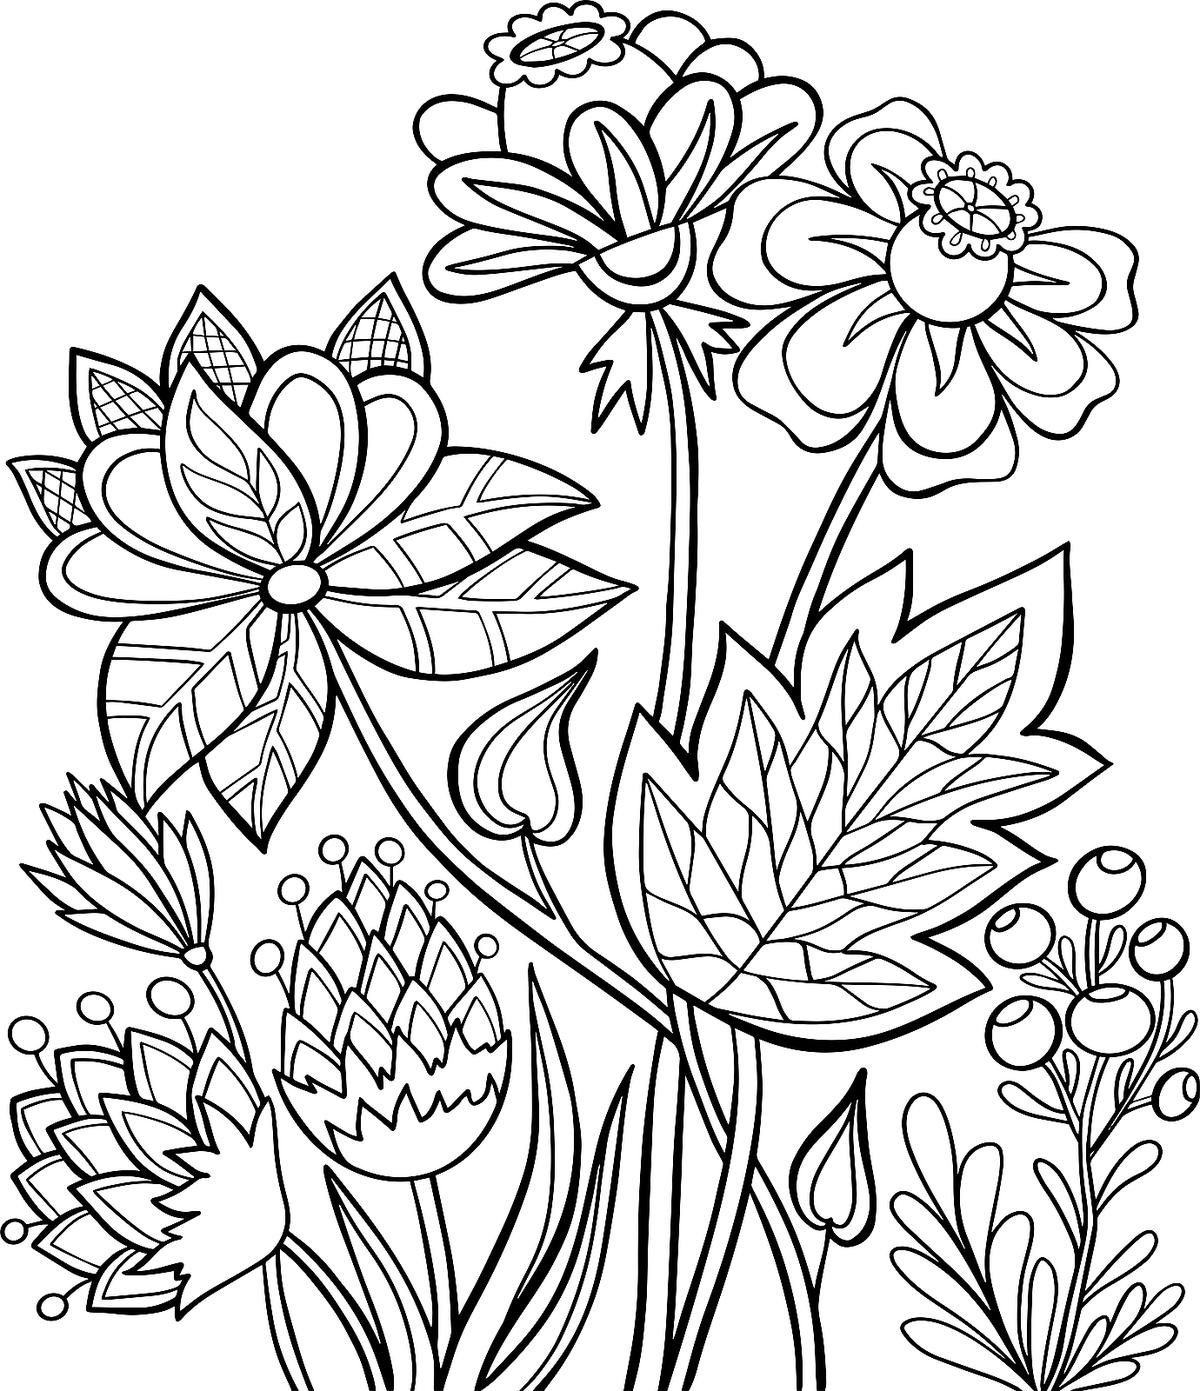 flower coloring sheet flowers coloring pages 10 free fun printable coloring flower sheet coloring